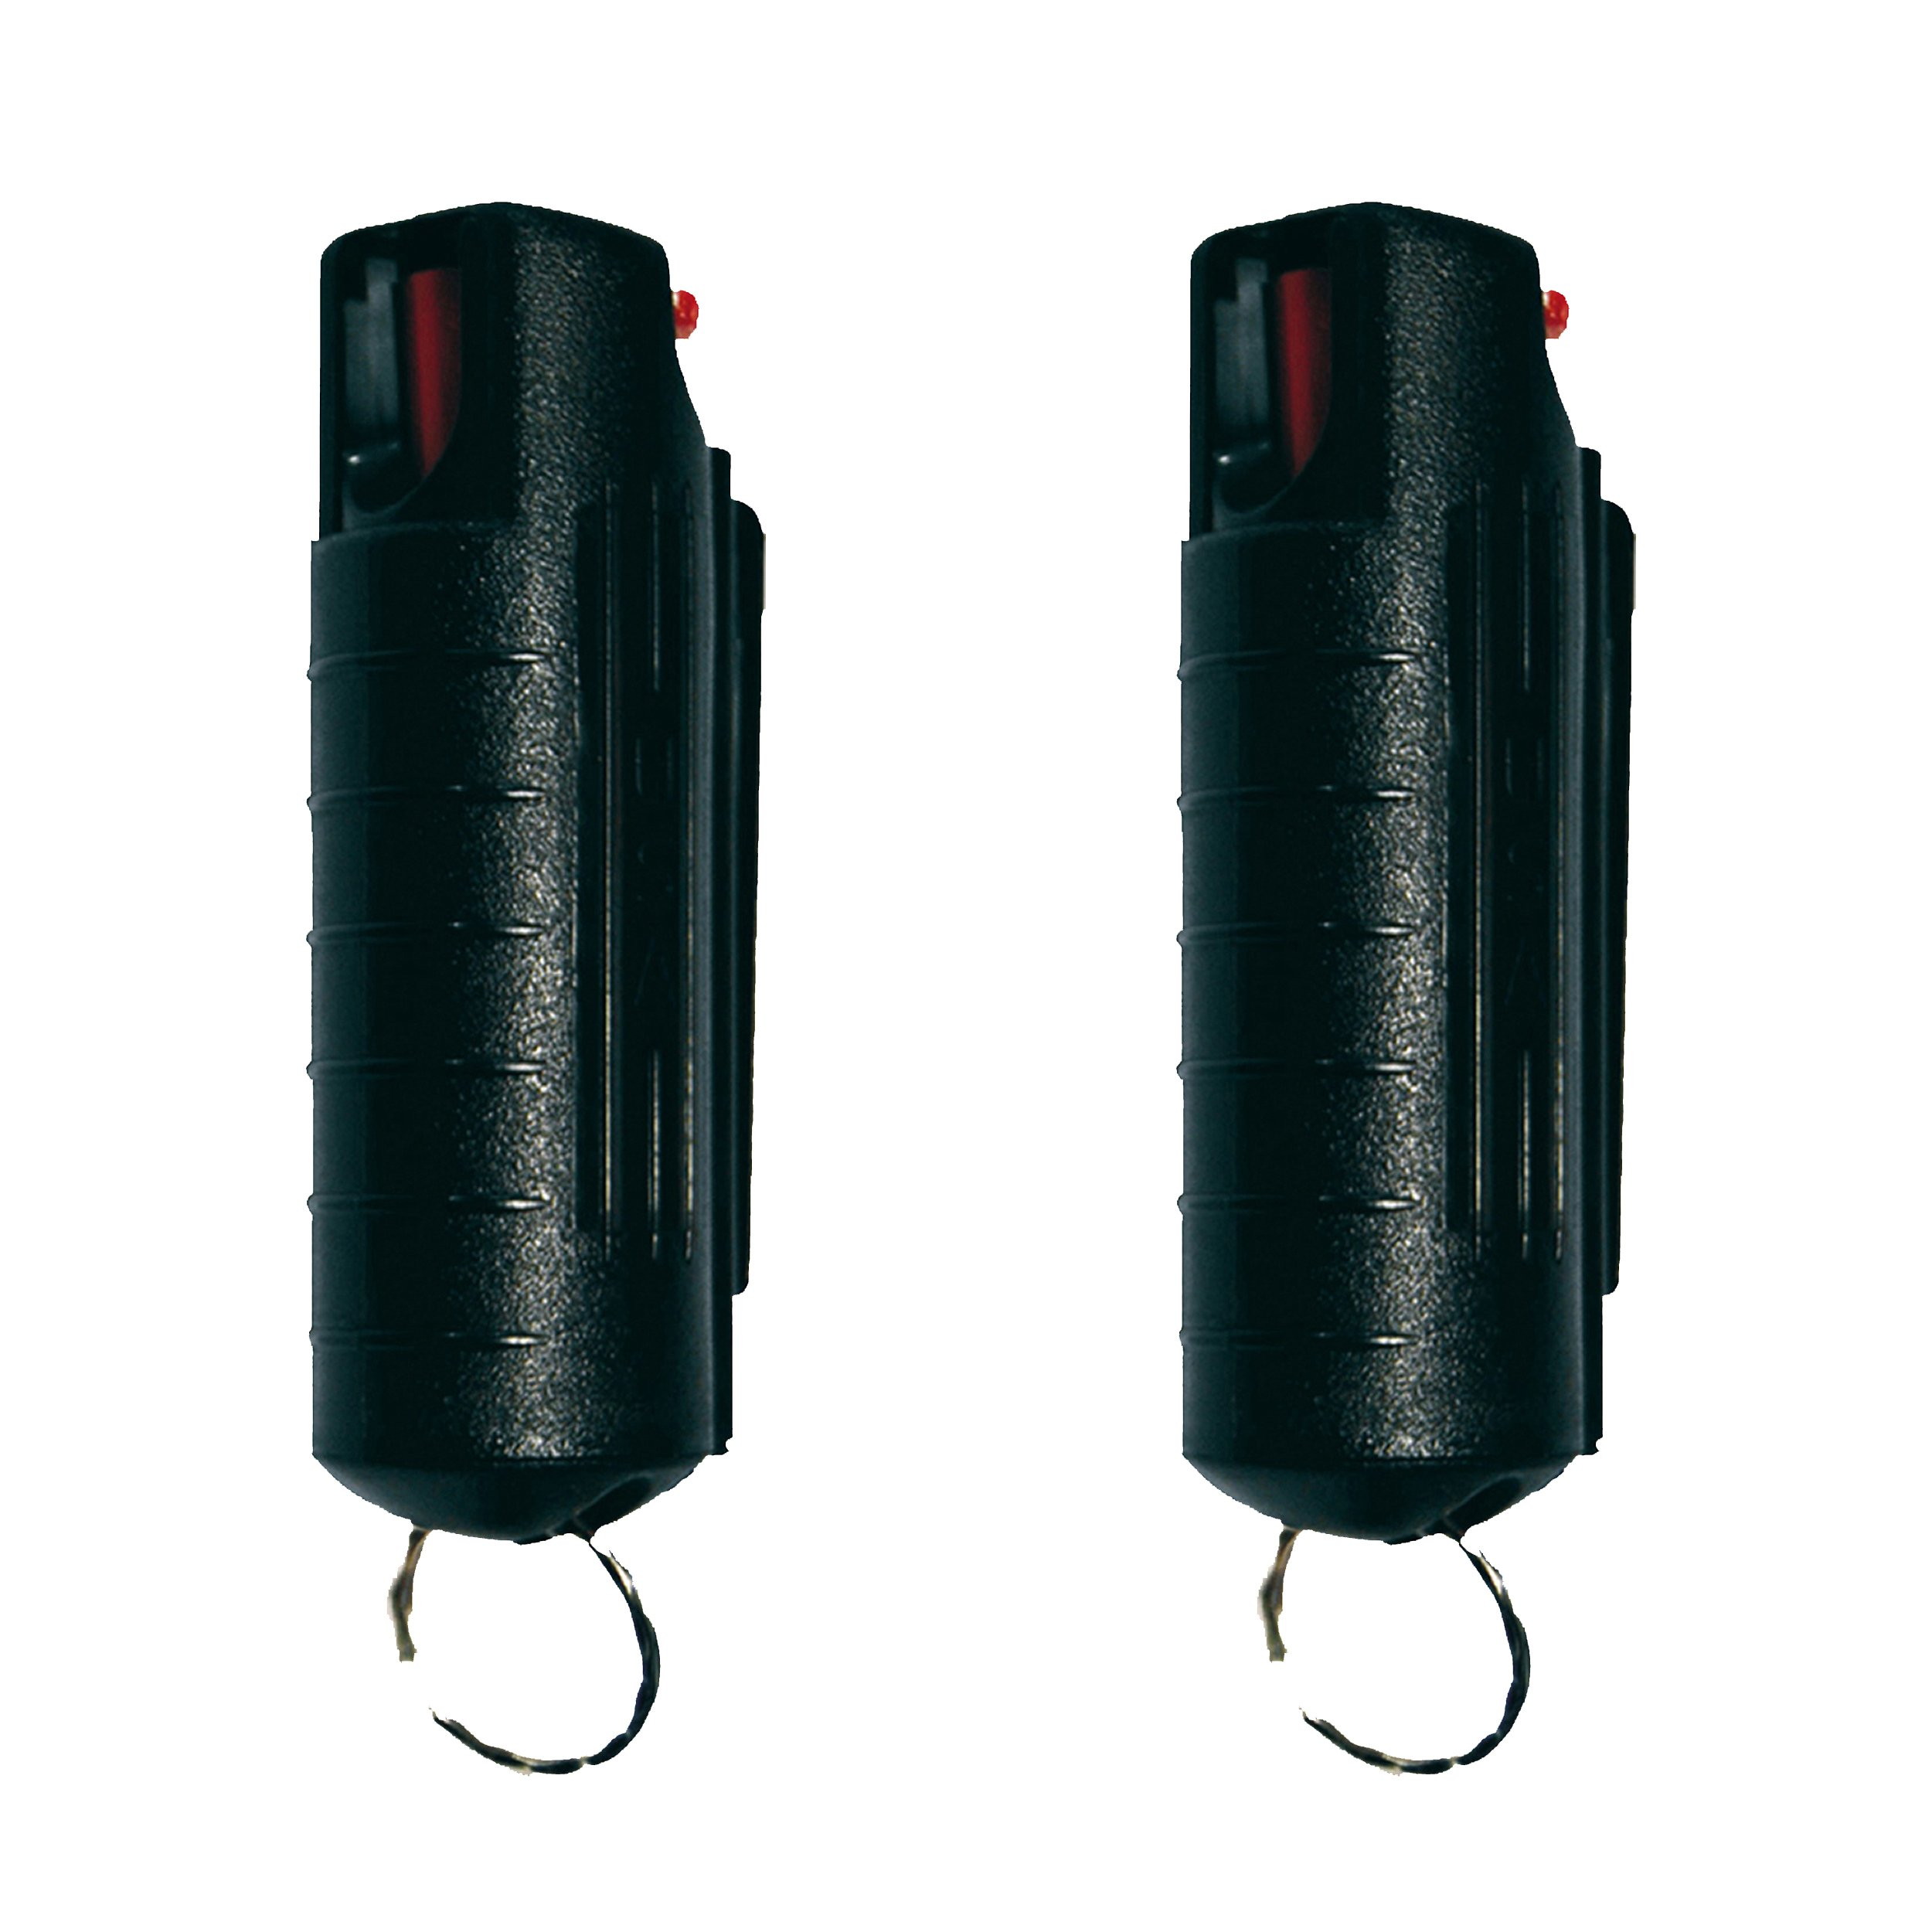 Wildfire 18% 1/2 Oz Hard Case Pepper Spray - Choice of 1 or 2 Pak (Black, 2 Pak) by Wildfire Motors